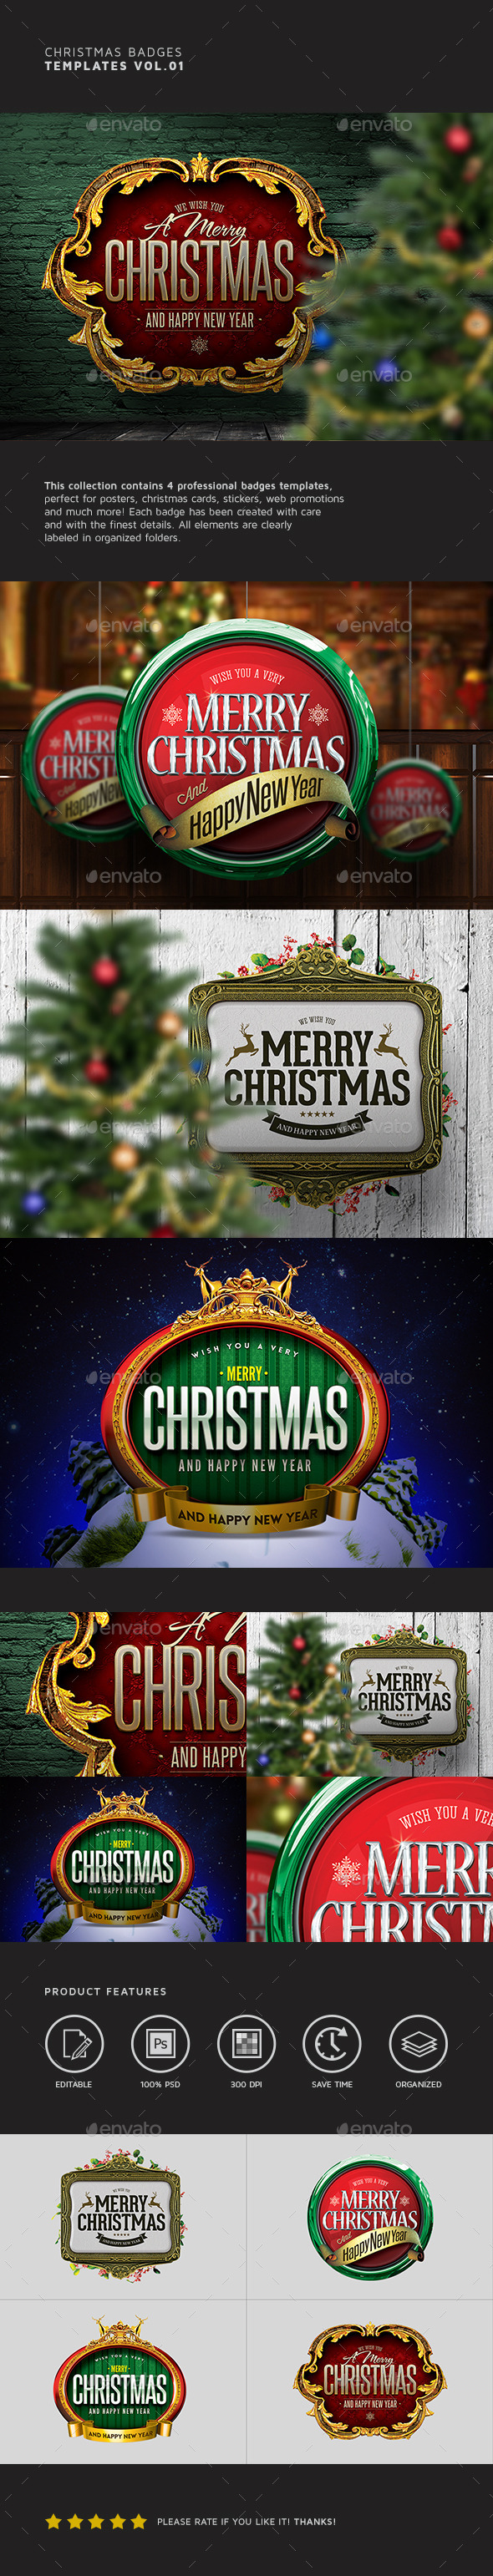 Christmas Badges Vol.01 - Badges & Stickers Web Elements